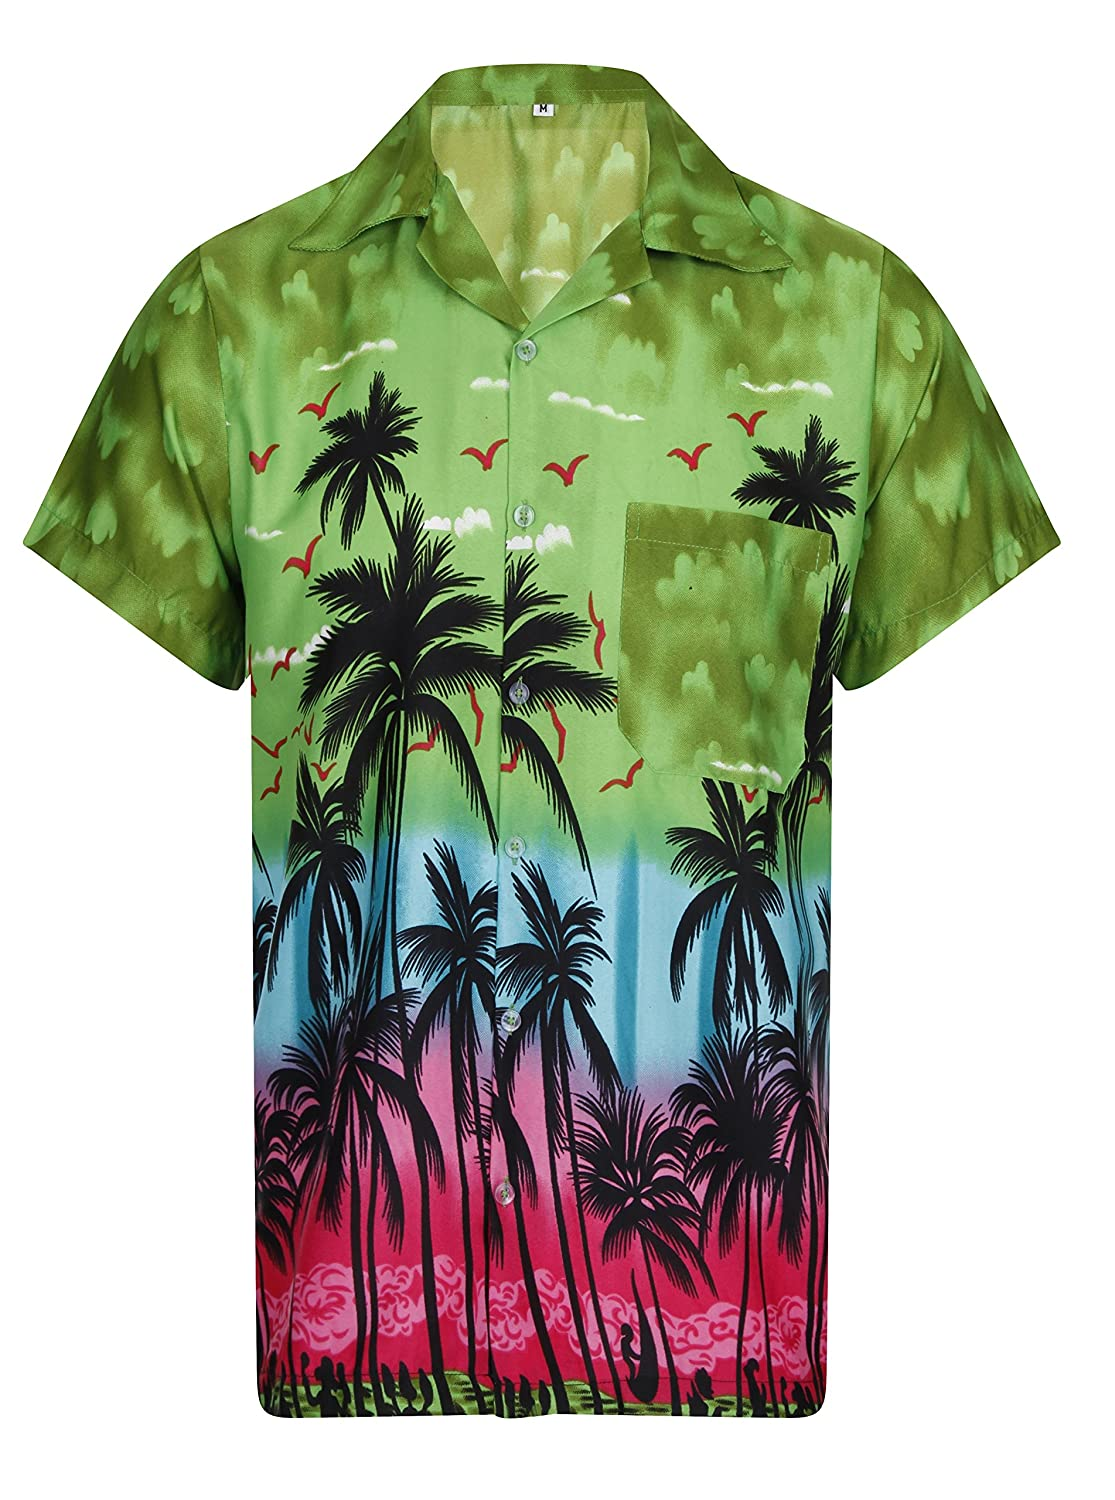 Casual Button-down Shirts Hawaiian Shirt Mens Short Sleeve Camper Van Party Aloha Beach Stag Factory Direct Selling Price